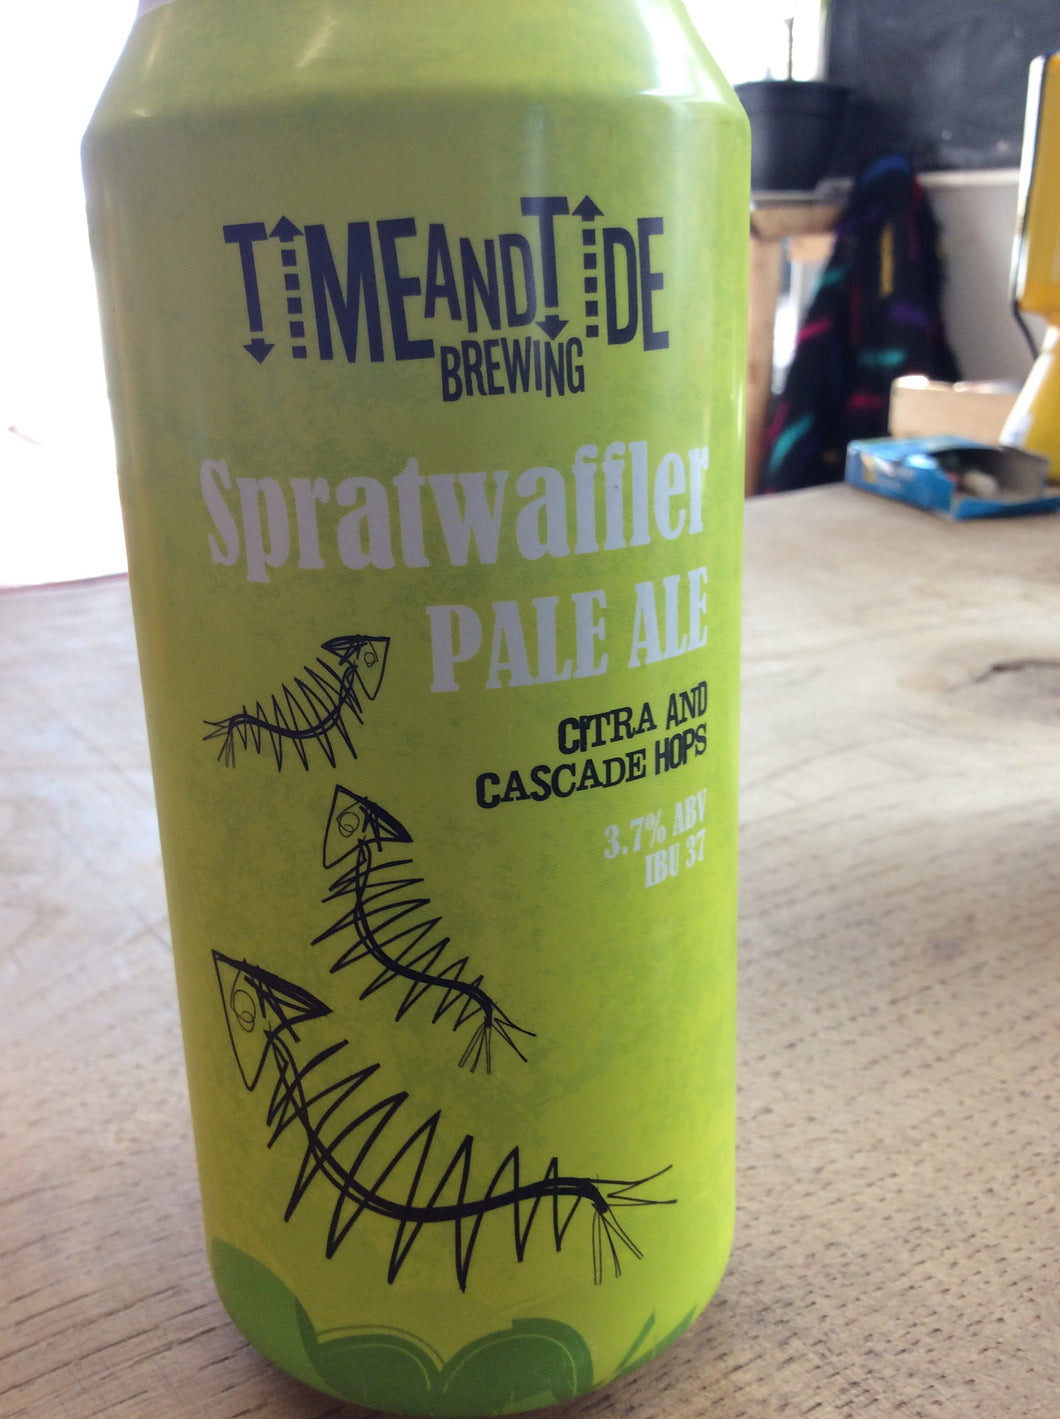 Time and Tide - Spratwaffler Pale Ale